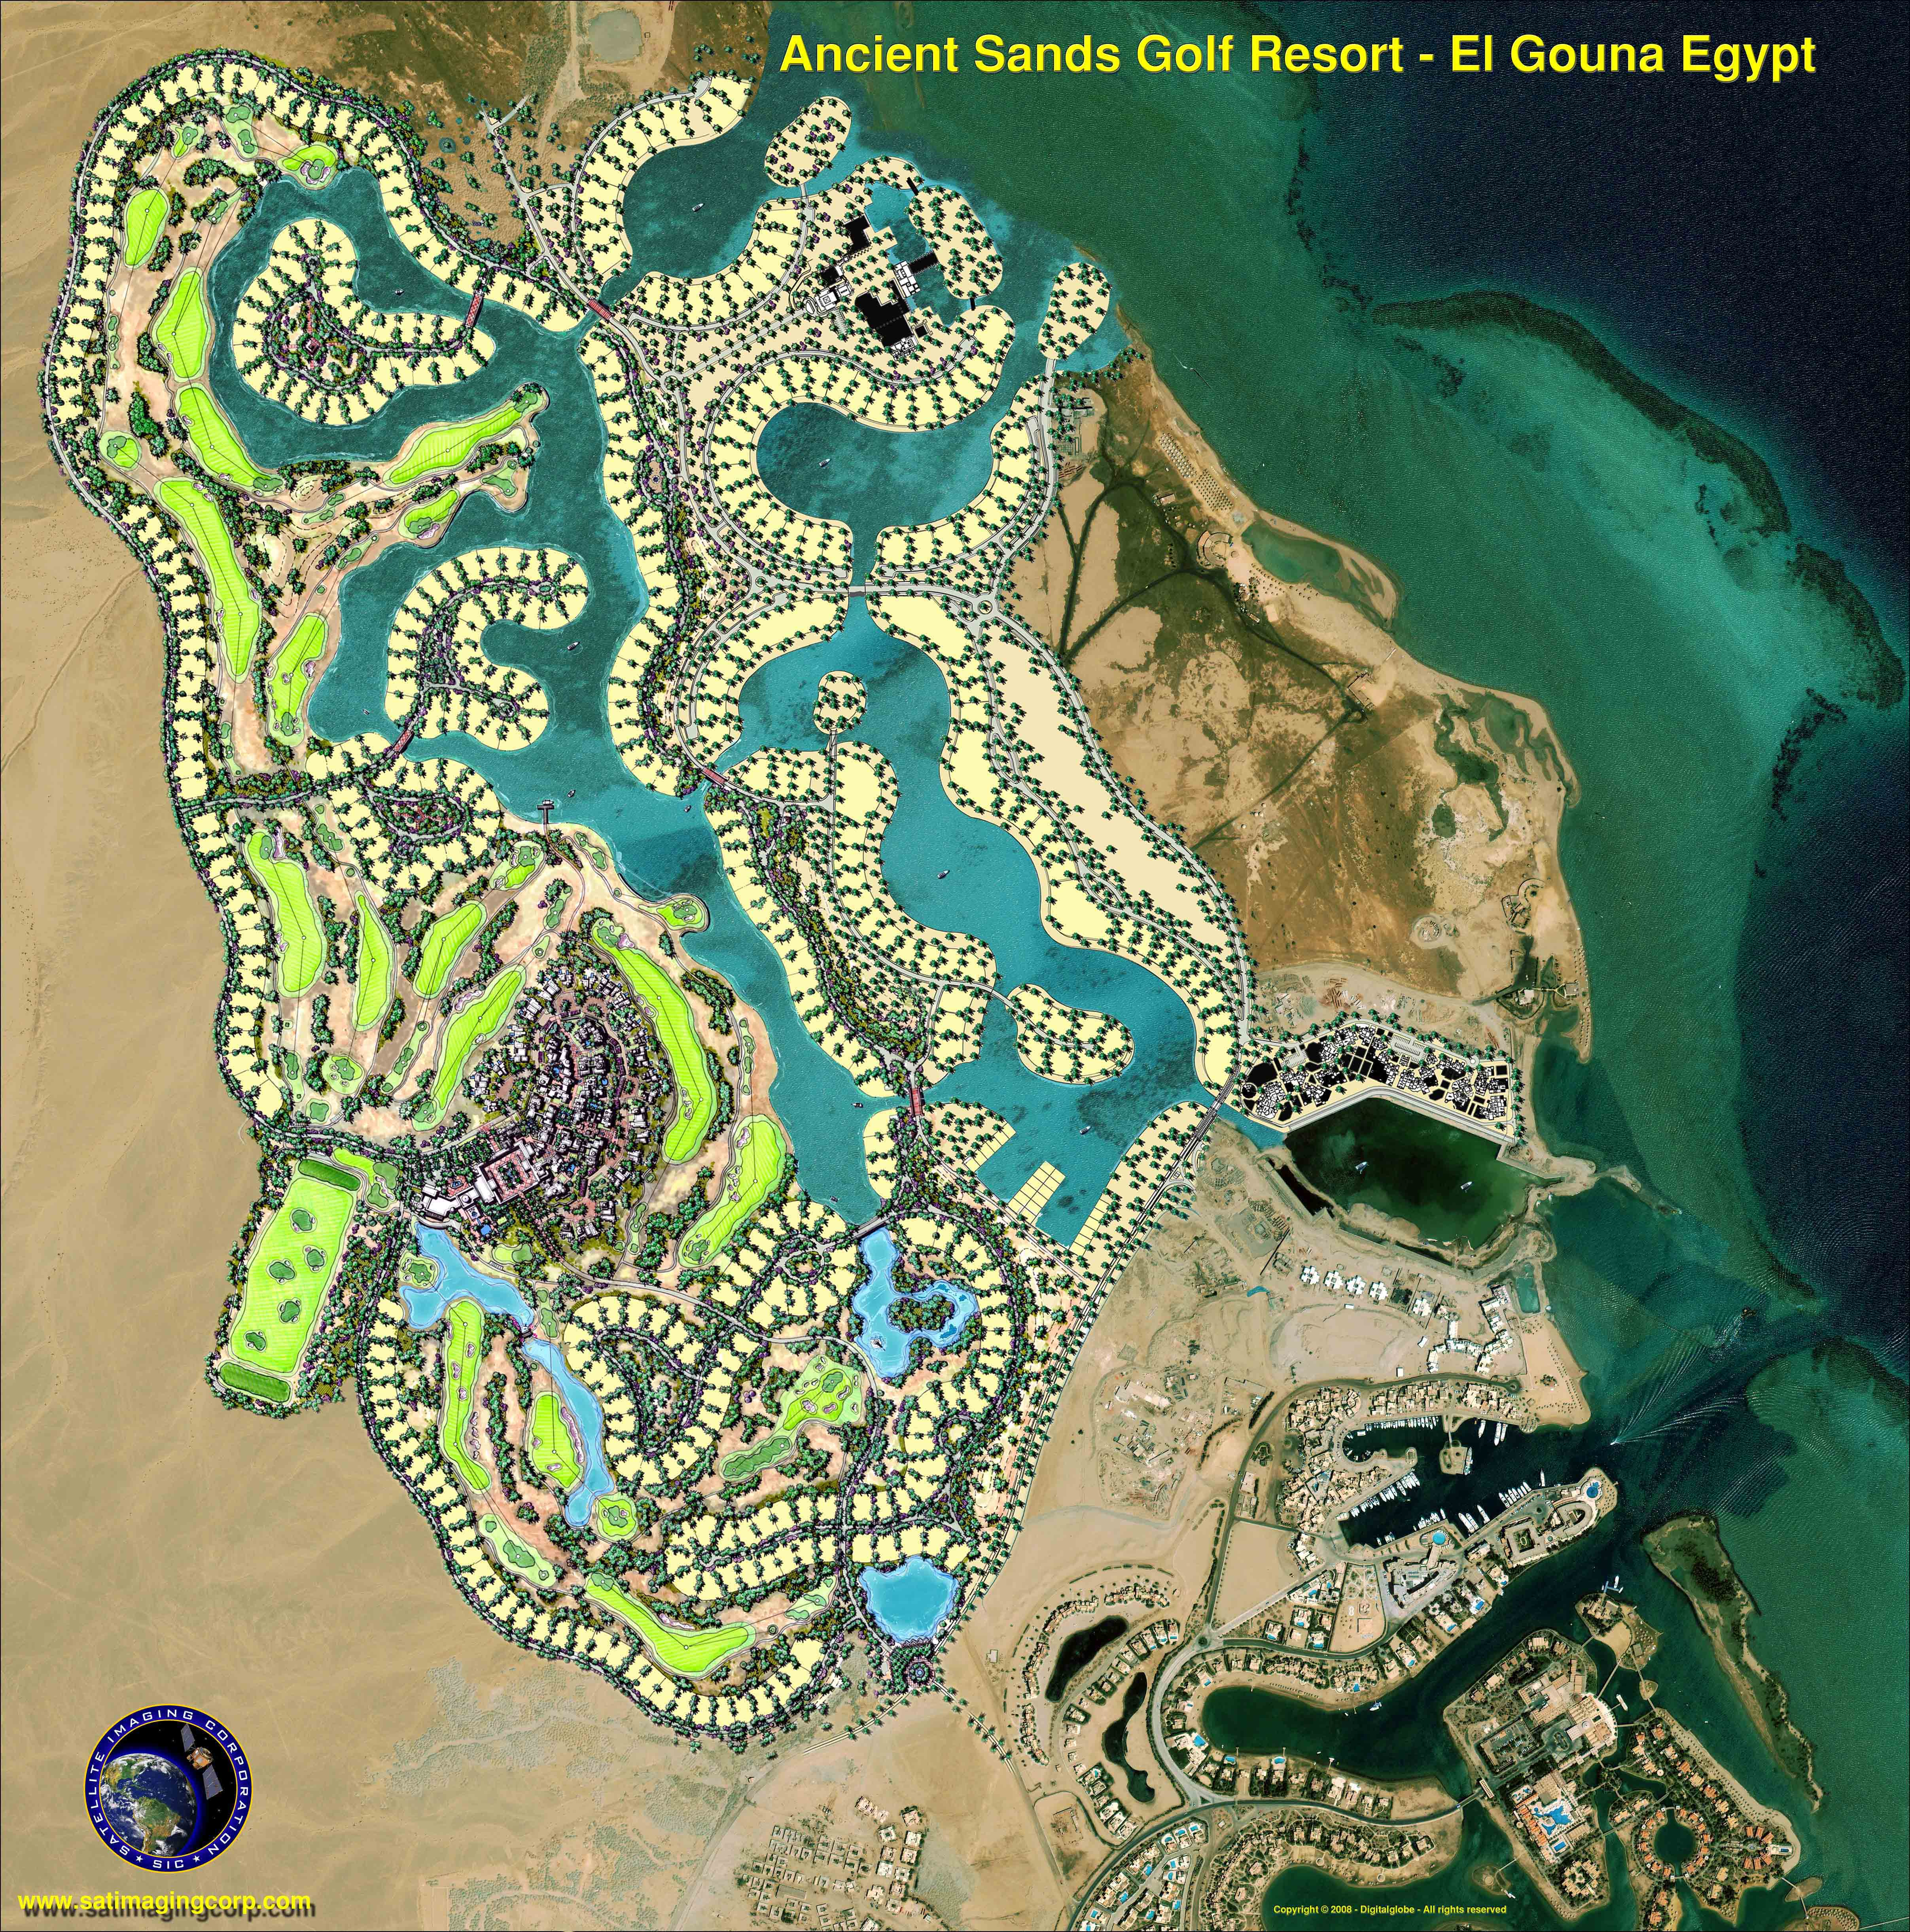 Golf Resort in Egypt Commissioned Satellite Imaging